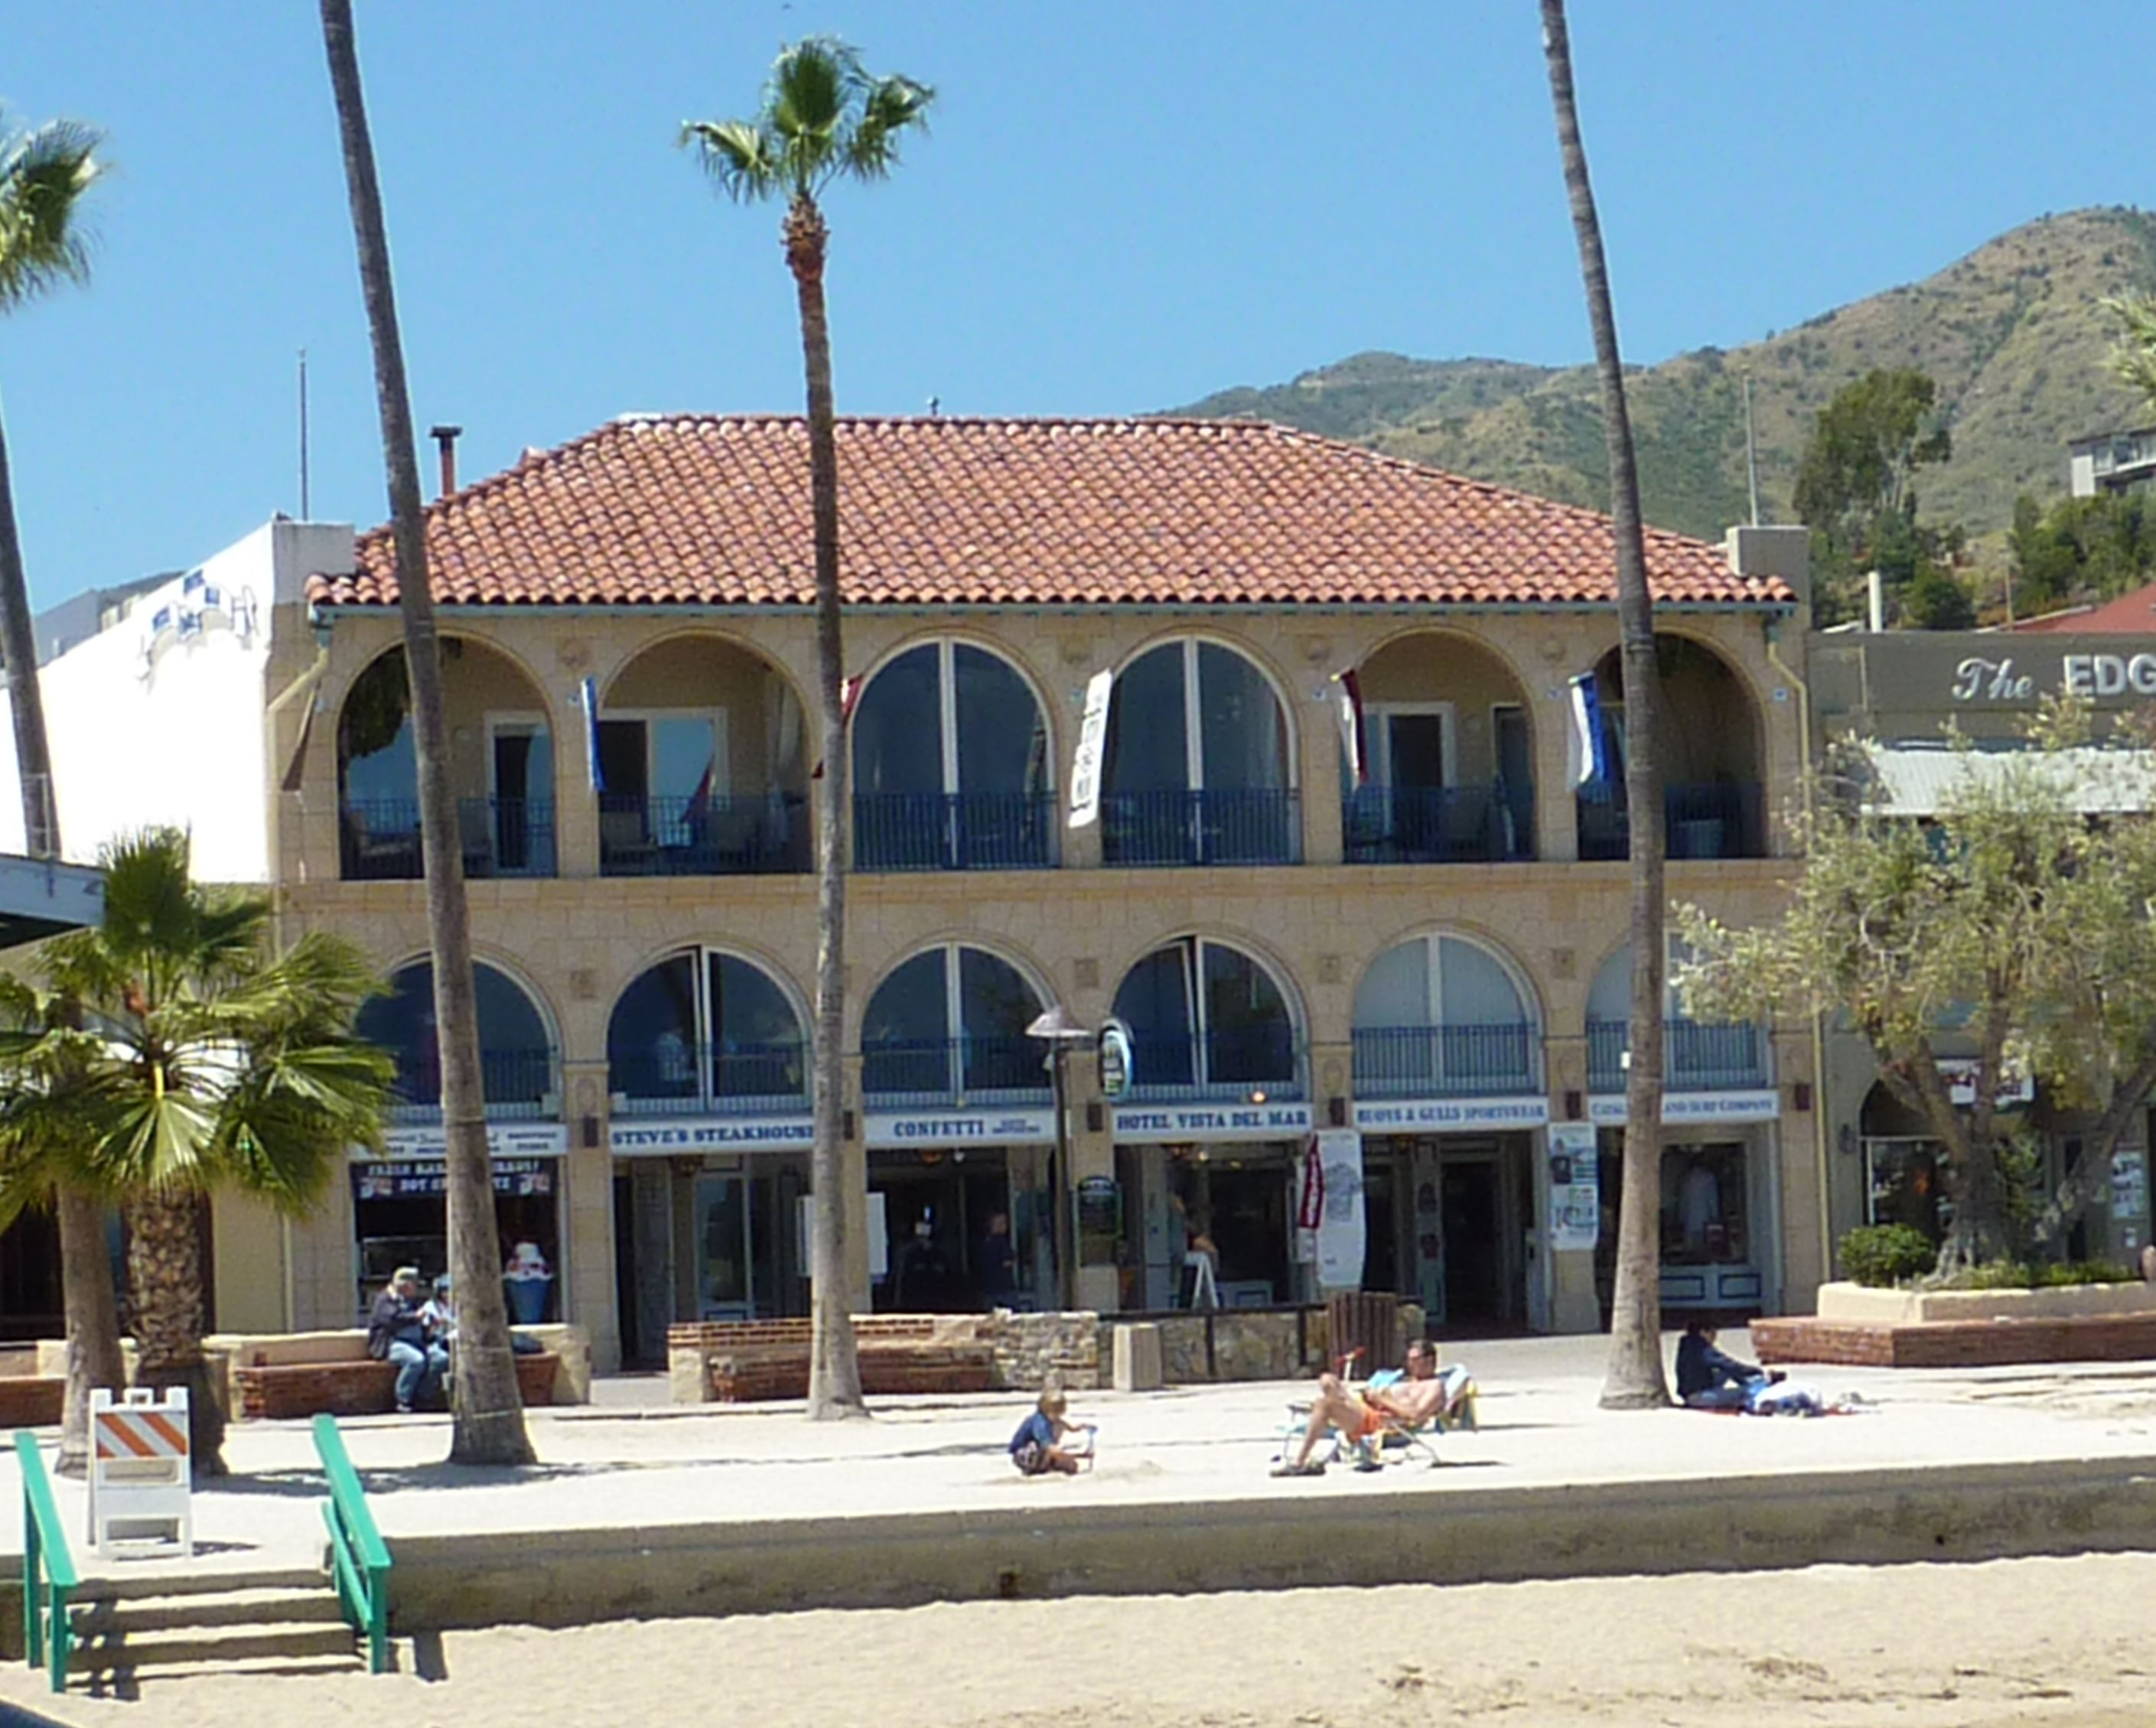 My Grandmothers Hotel The Campo Bravo Once Owned By The Lady In White Now The Vista Del Mar